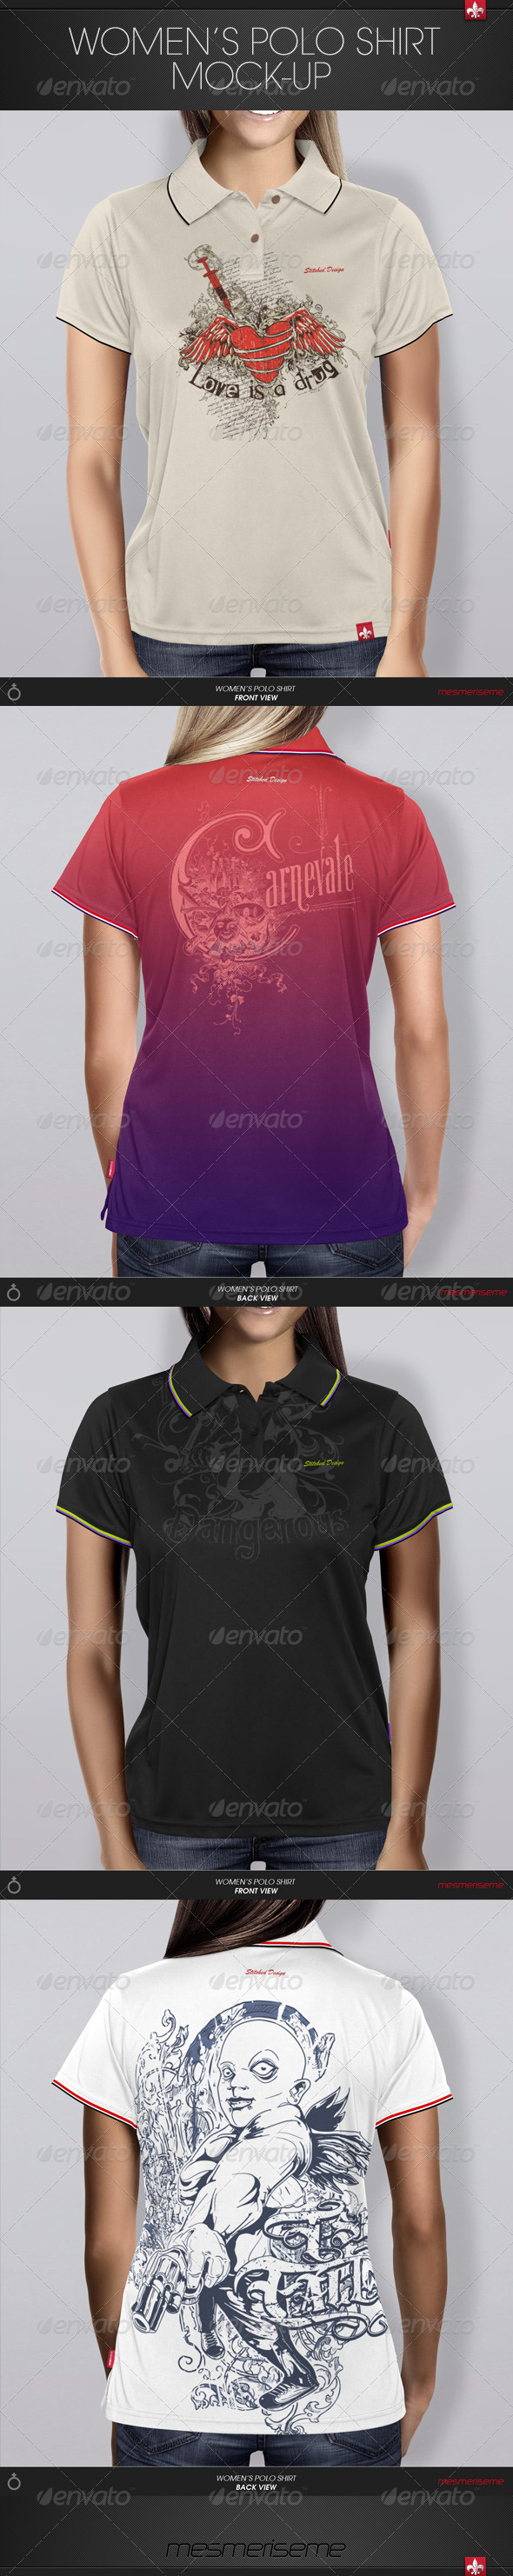 GraphicRiver Women s Polo Shirt Mock-up 6241364